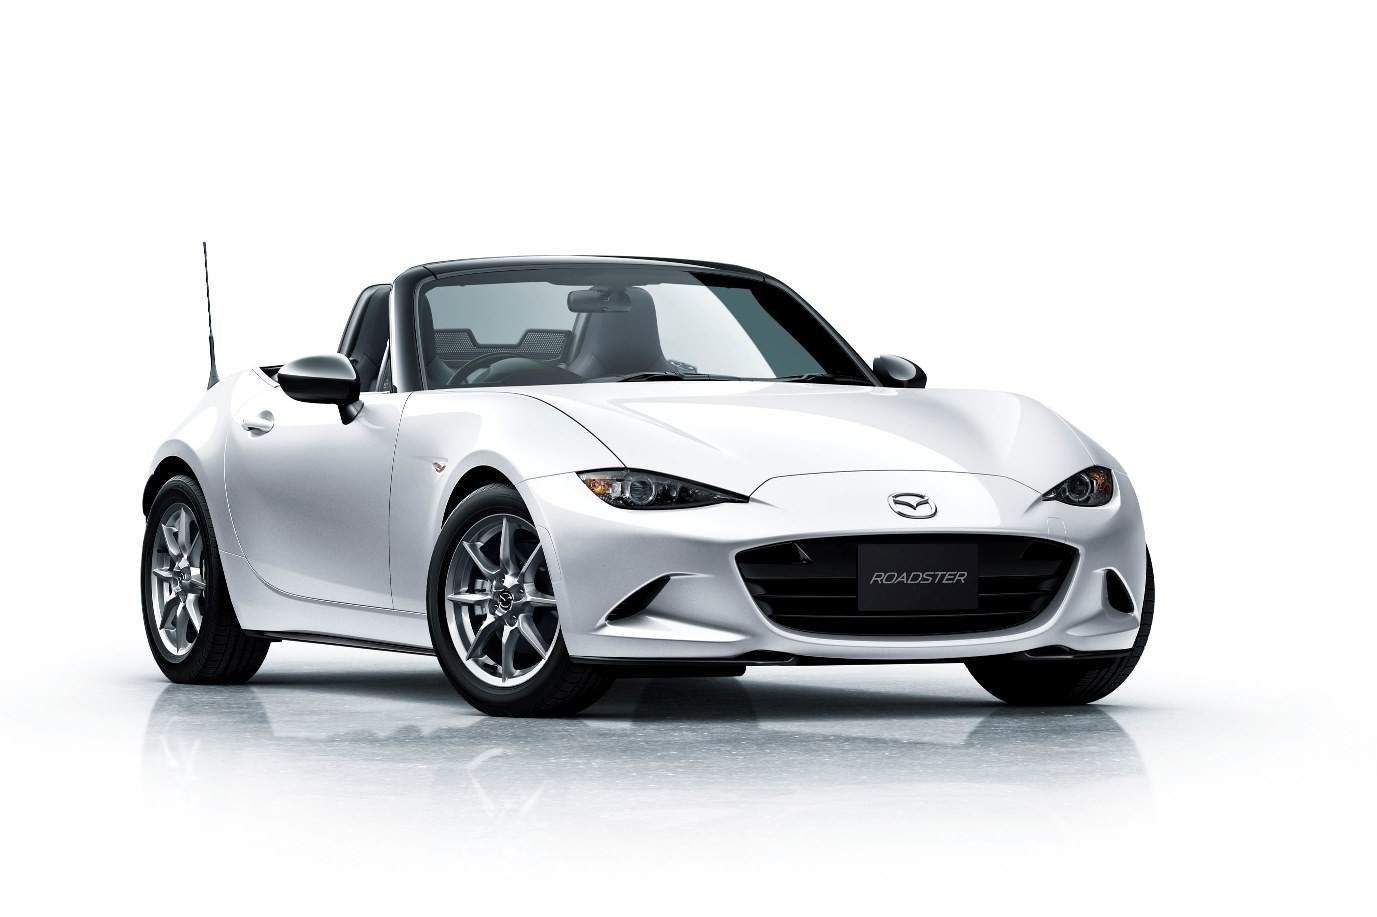 mazda-unveils-roadster-nr-a-and-mazda2-15mb-in-japan-both-aimed-at-driving-enthusiasts_5